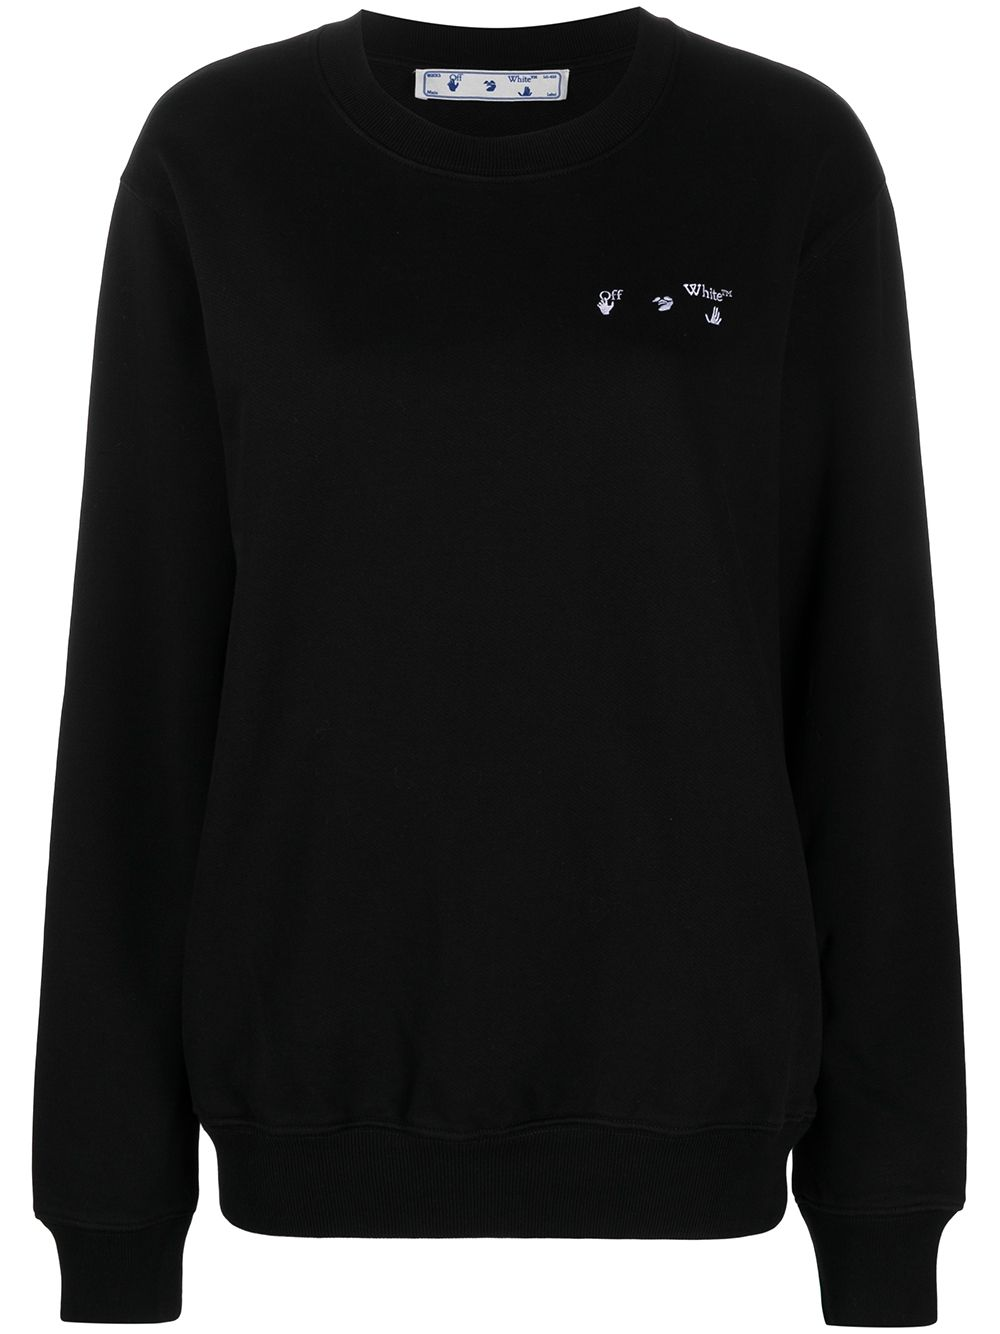 <p class='small-title'>OFF WHITE</p>Sweatshirt